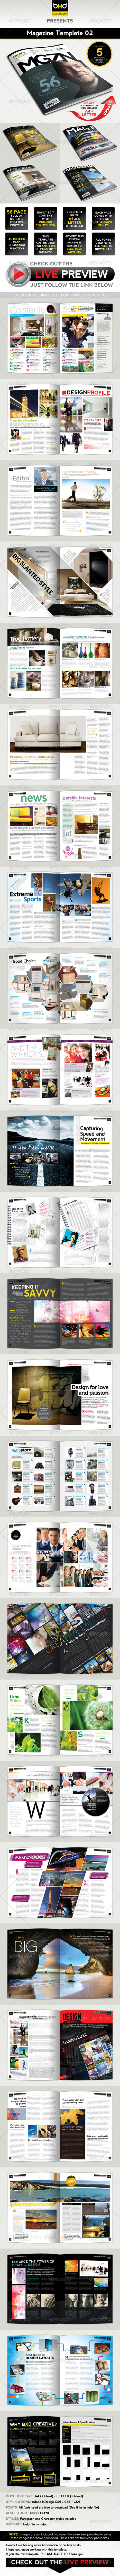 Magazine Template - InDesign 56 Page Layout V1 - Magazines Print Templates